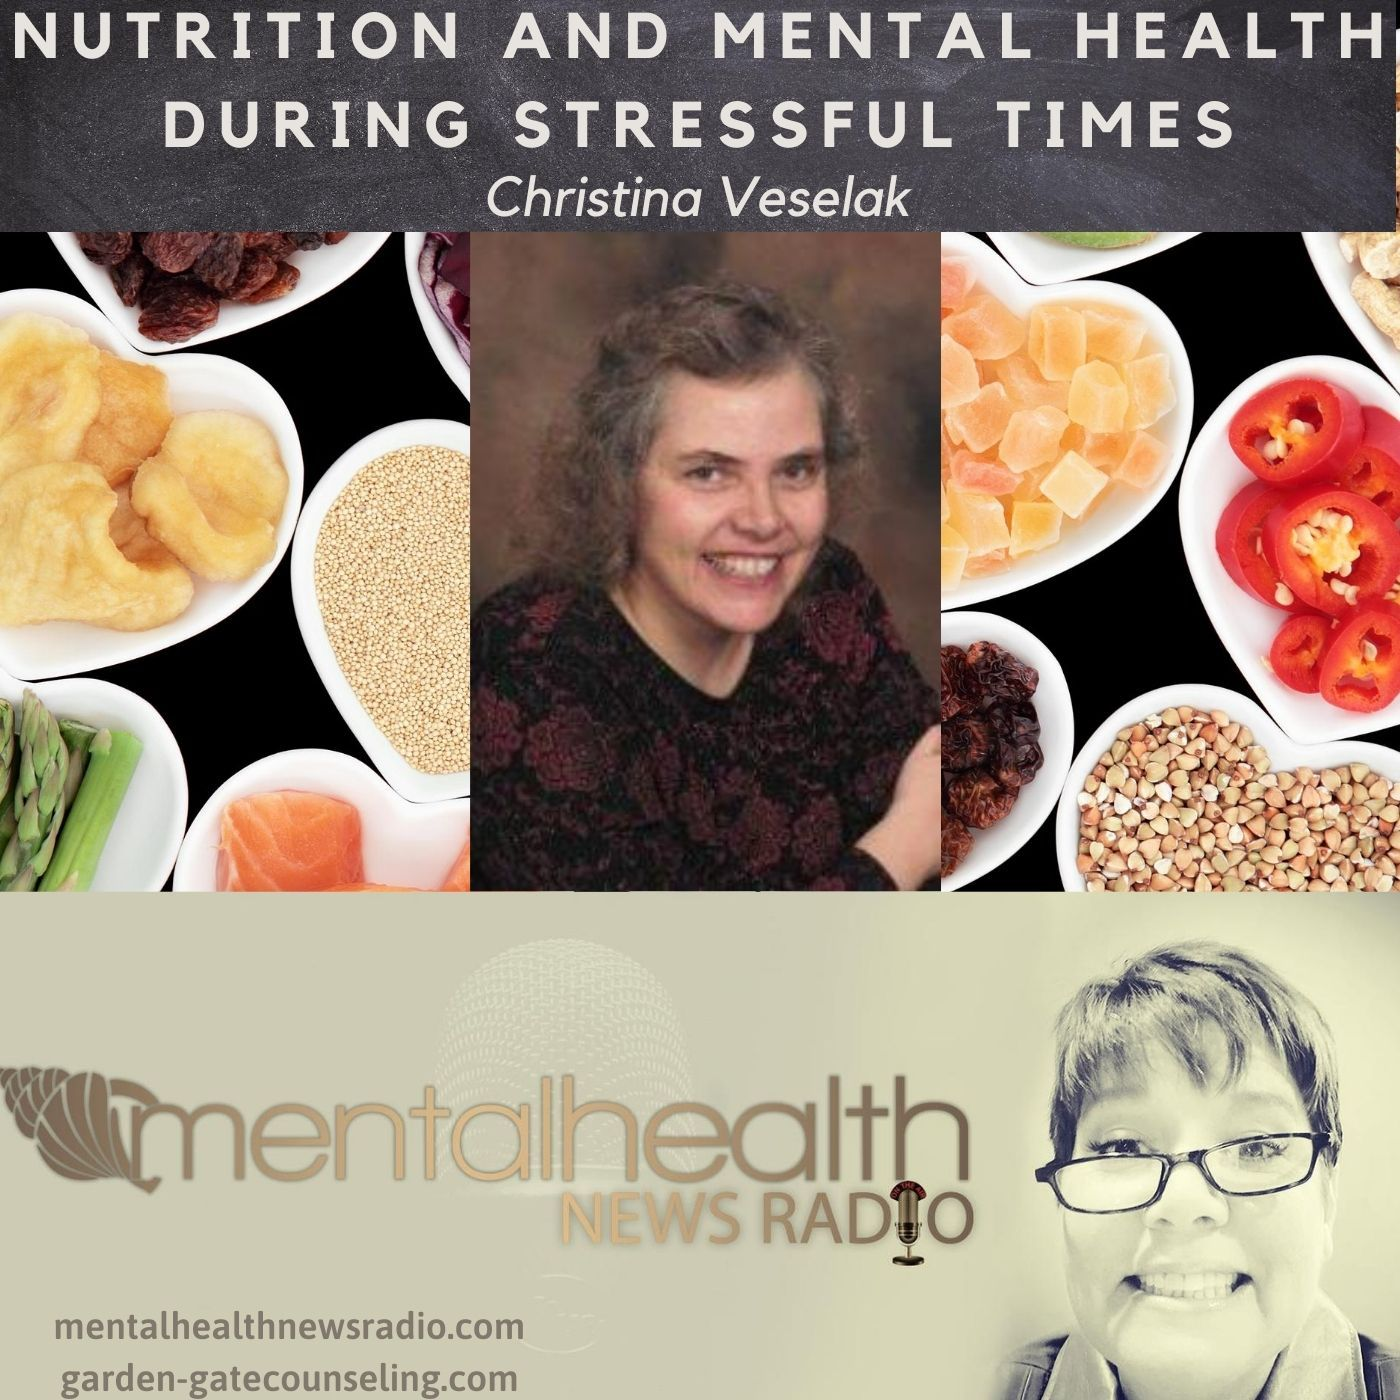 Mental Health News Radio - Nutrition and Mental Health During Stressful Times